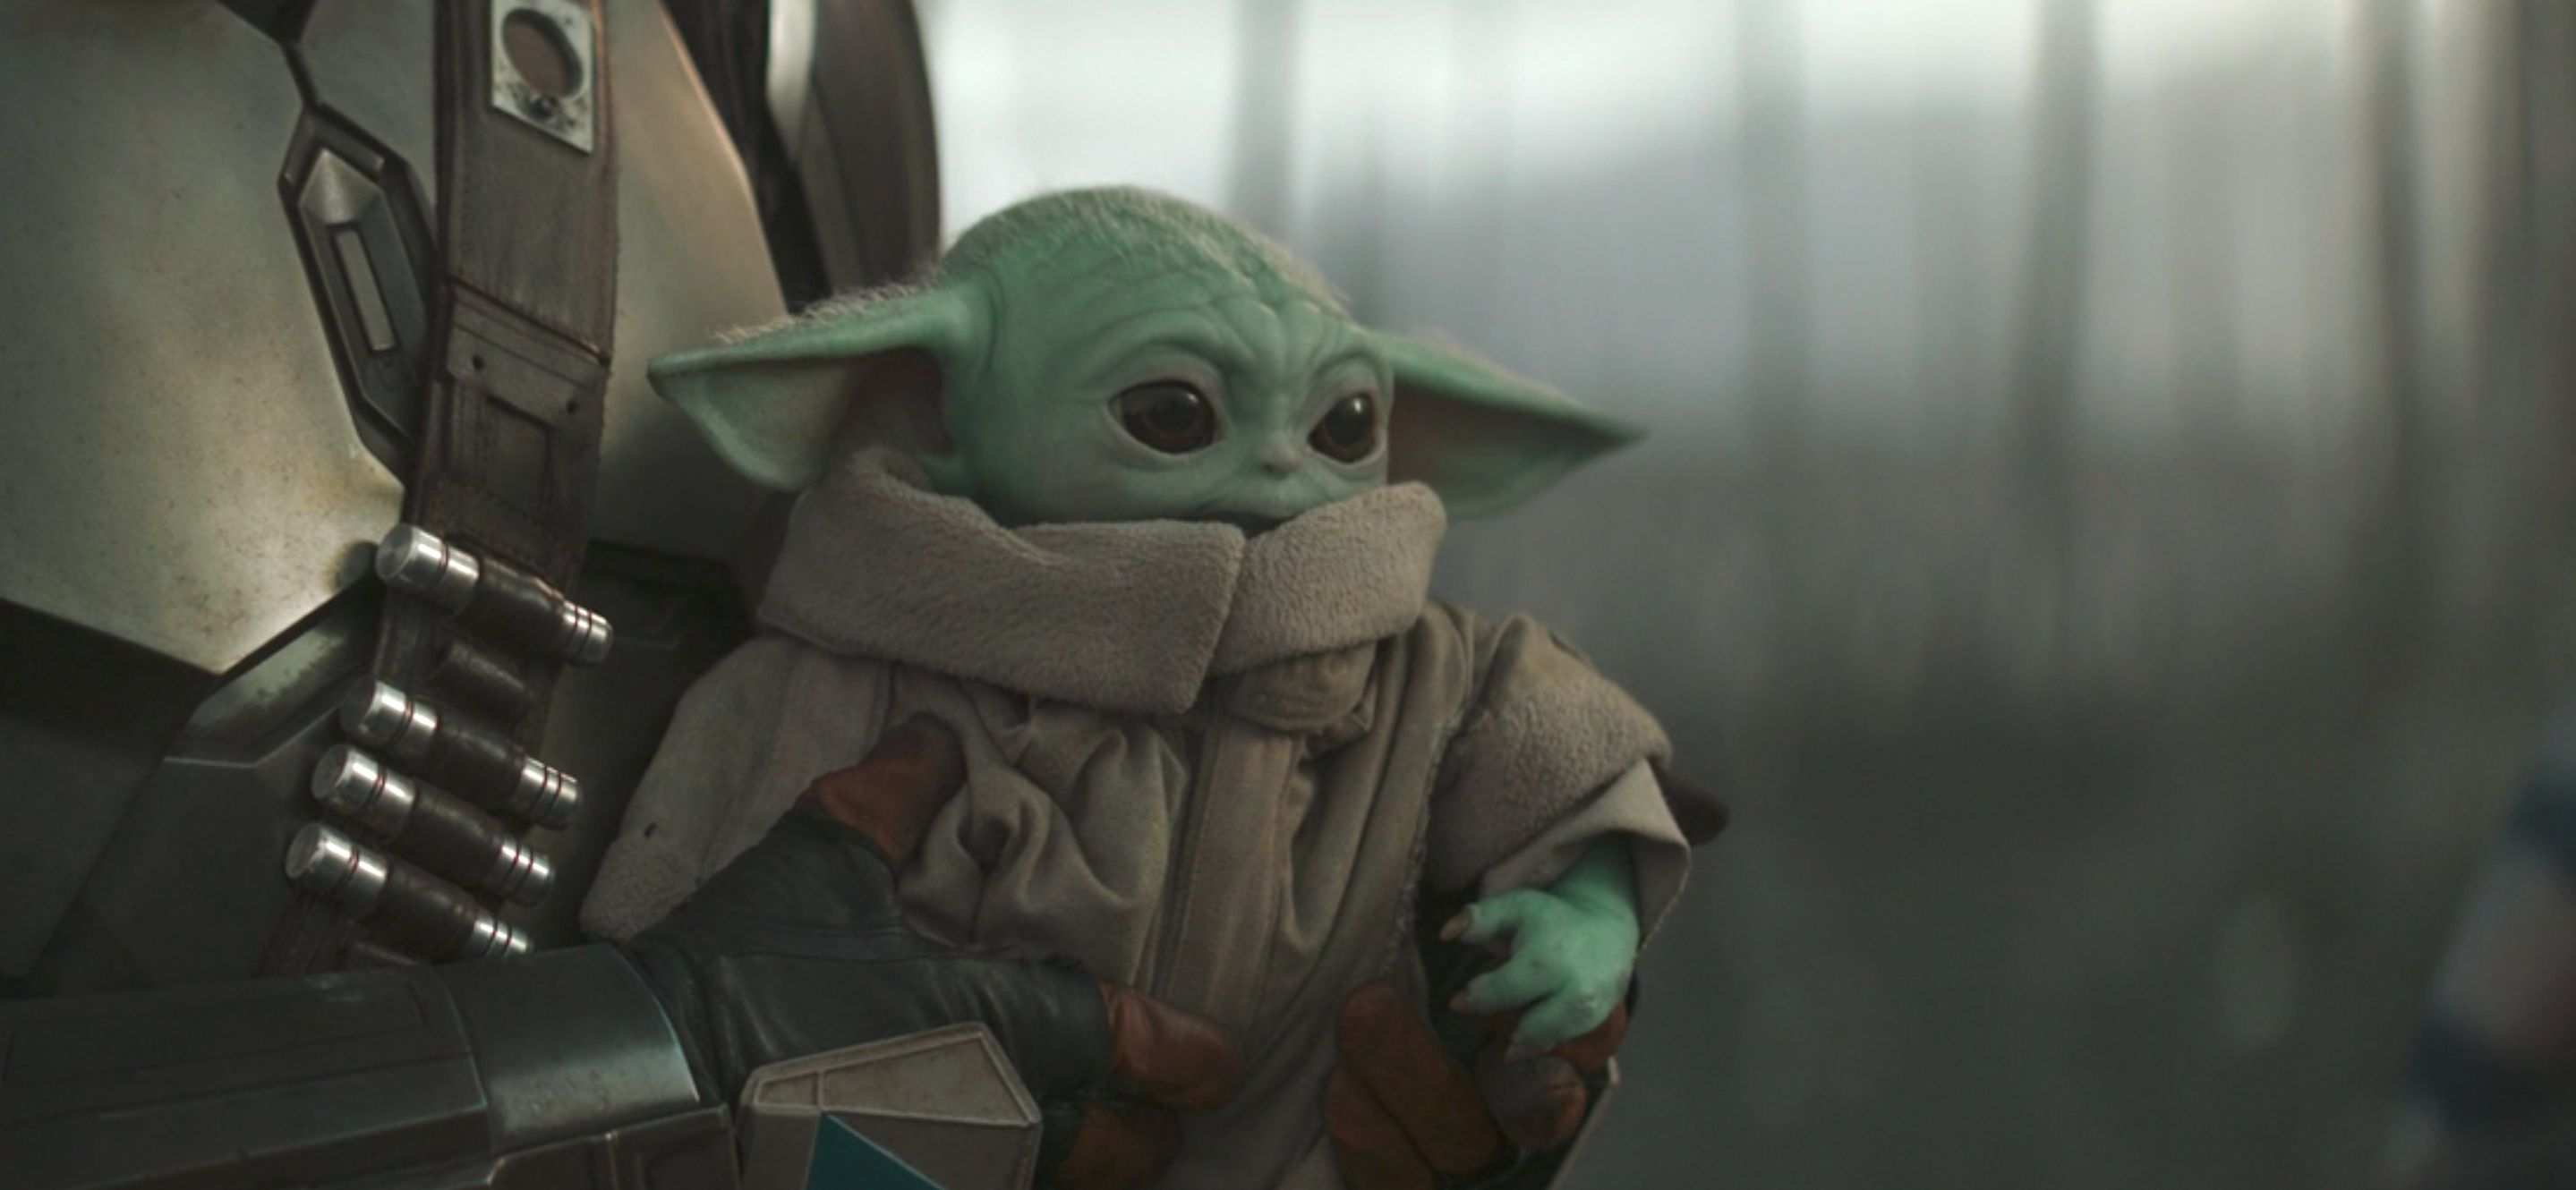 Baby Yoda S Real Name Is Finally Revealed And Sadly It S Not Baby Yoda Huffpost He S The Artist Formerly Known Star Wars Fans Favorite Character Star Wars